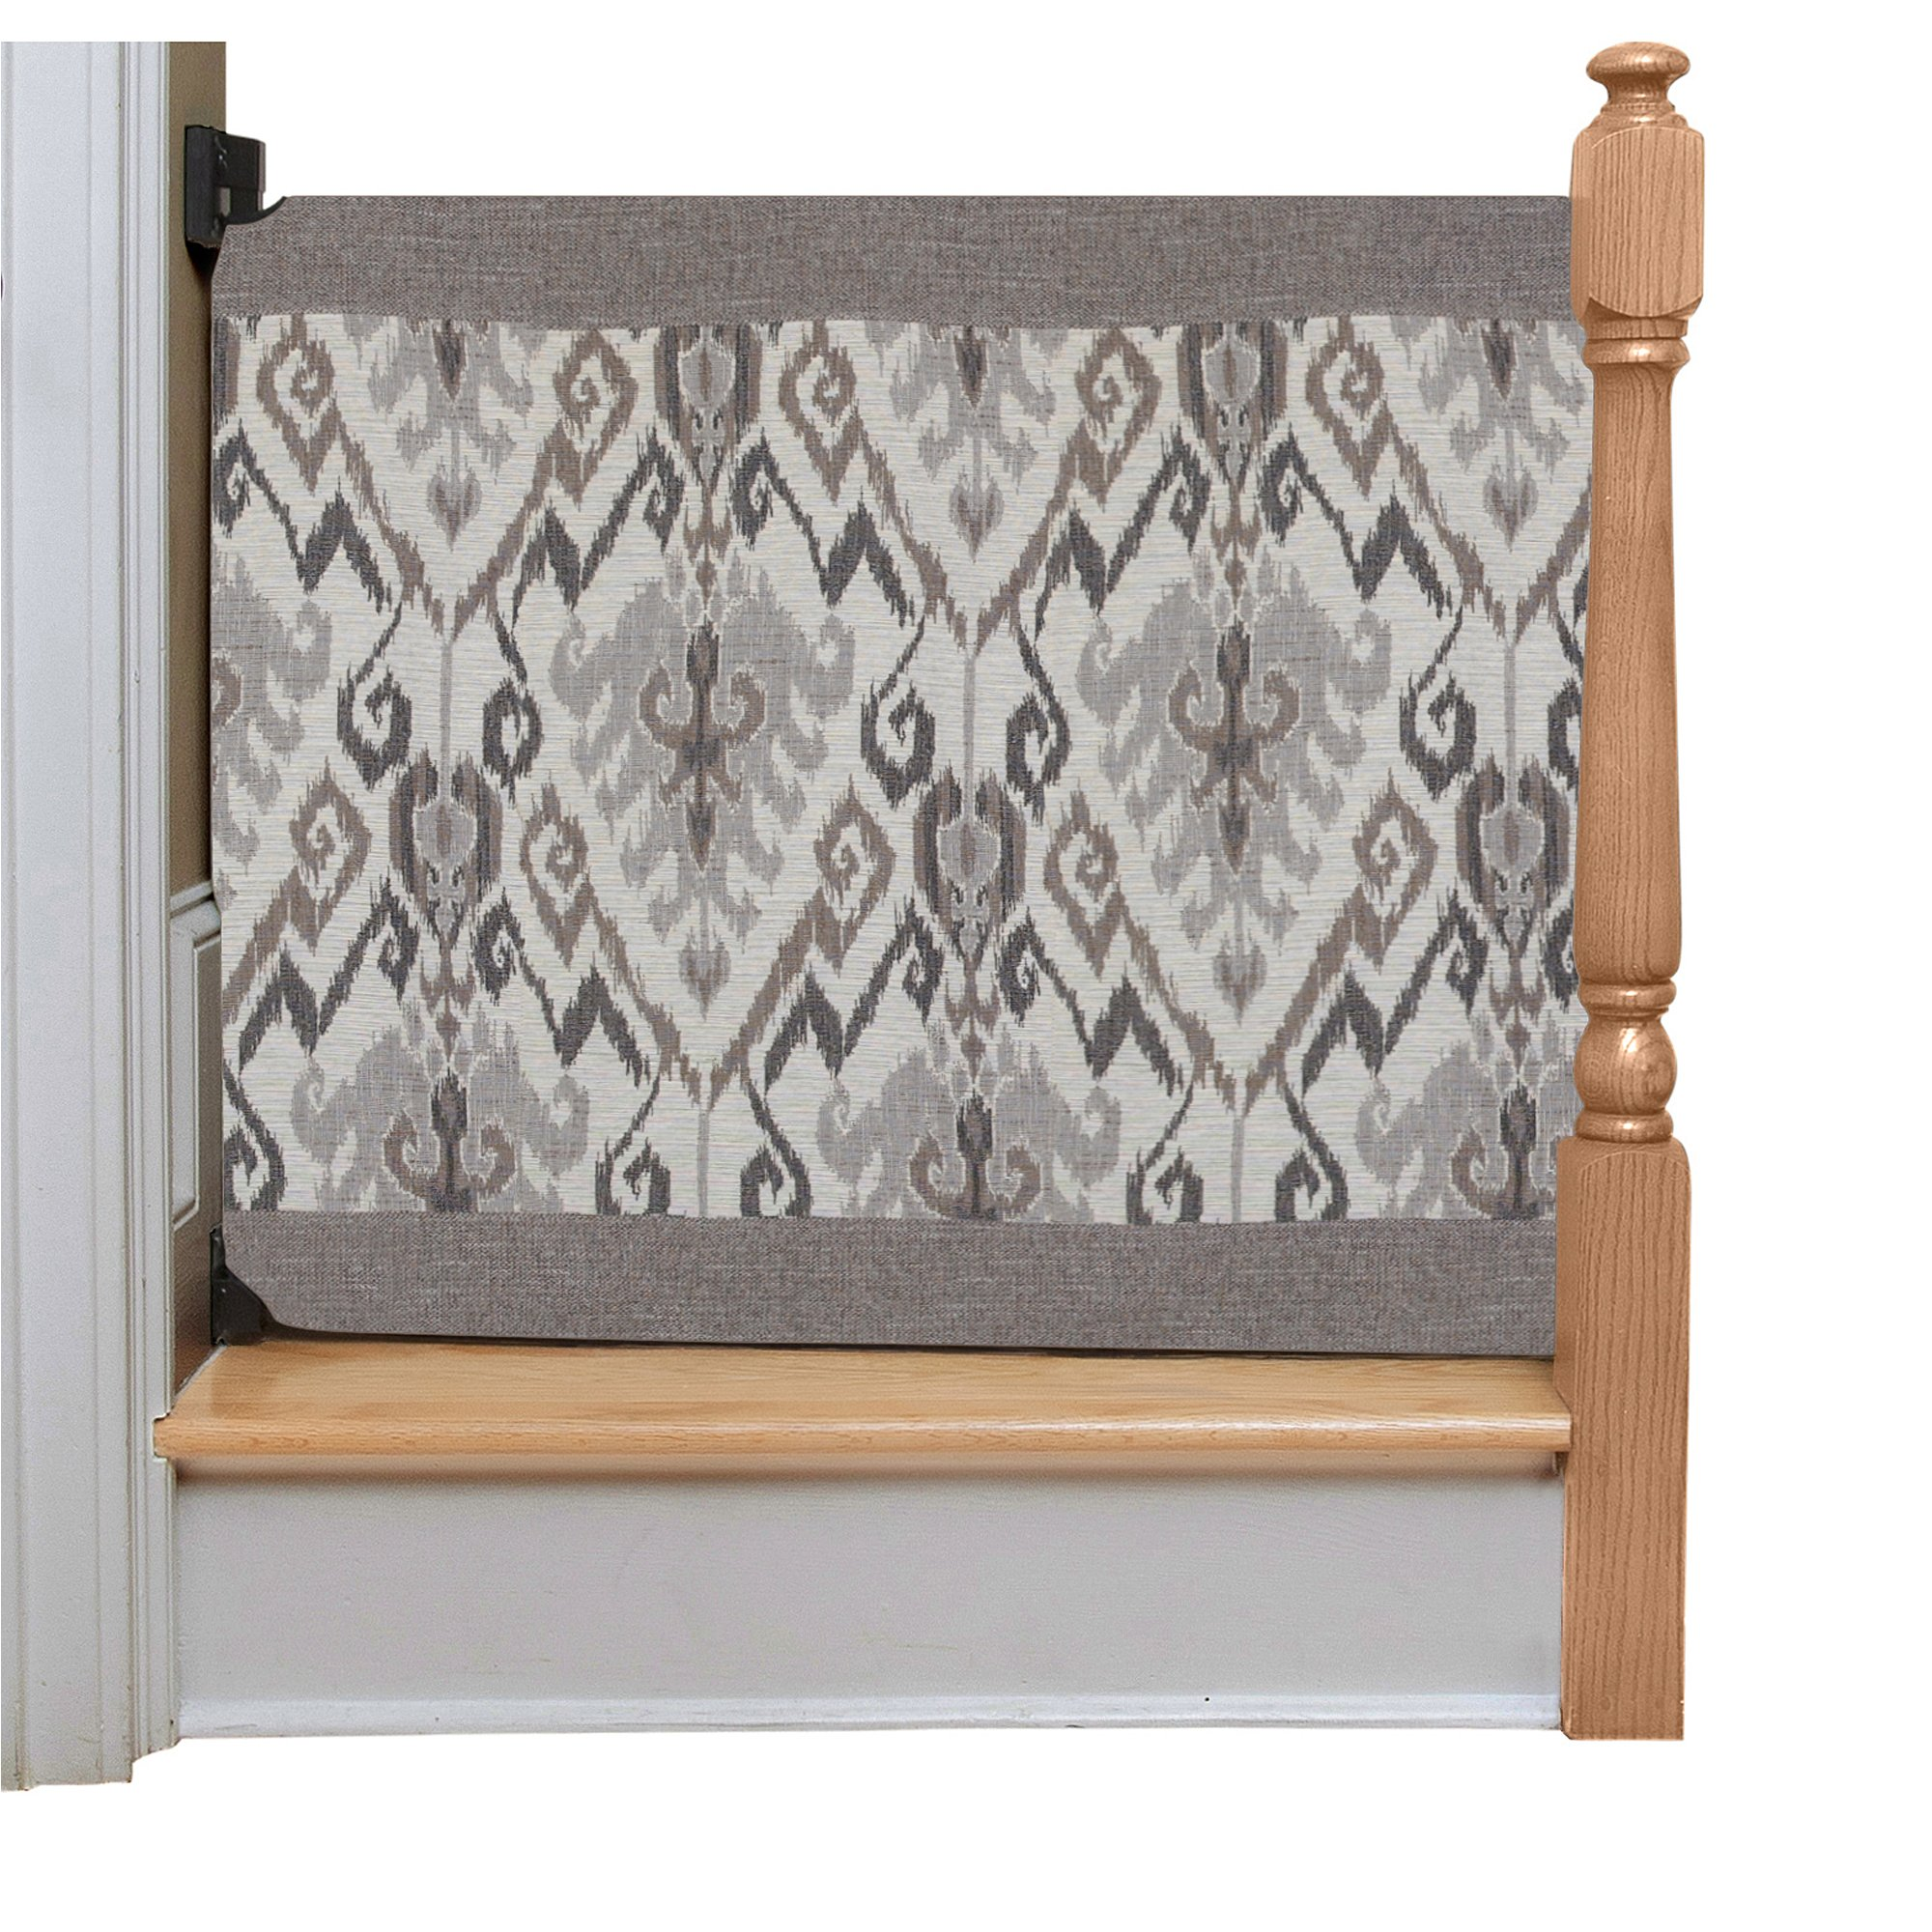 The Stair Barrier Wall to Banister Gate, Aztec, Regular